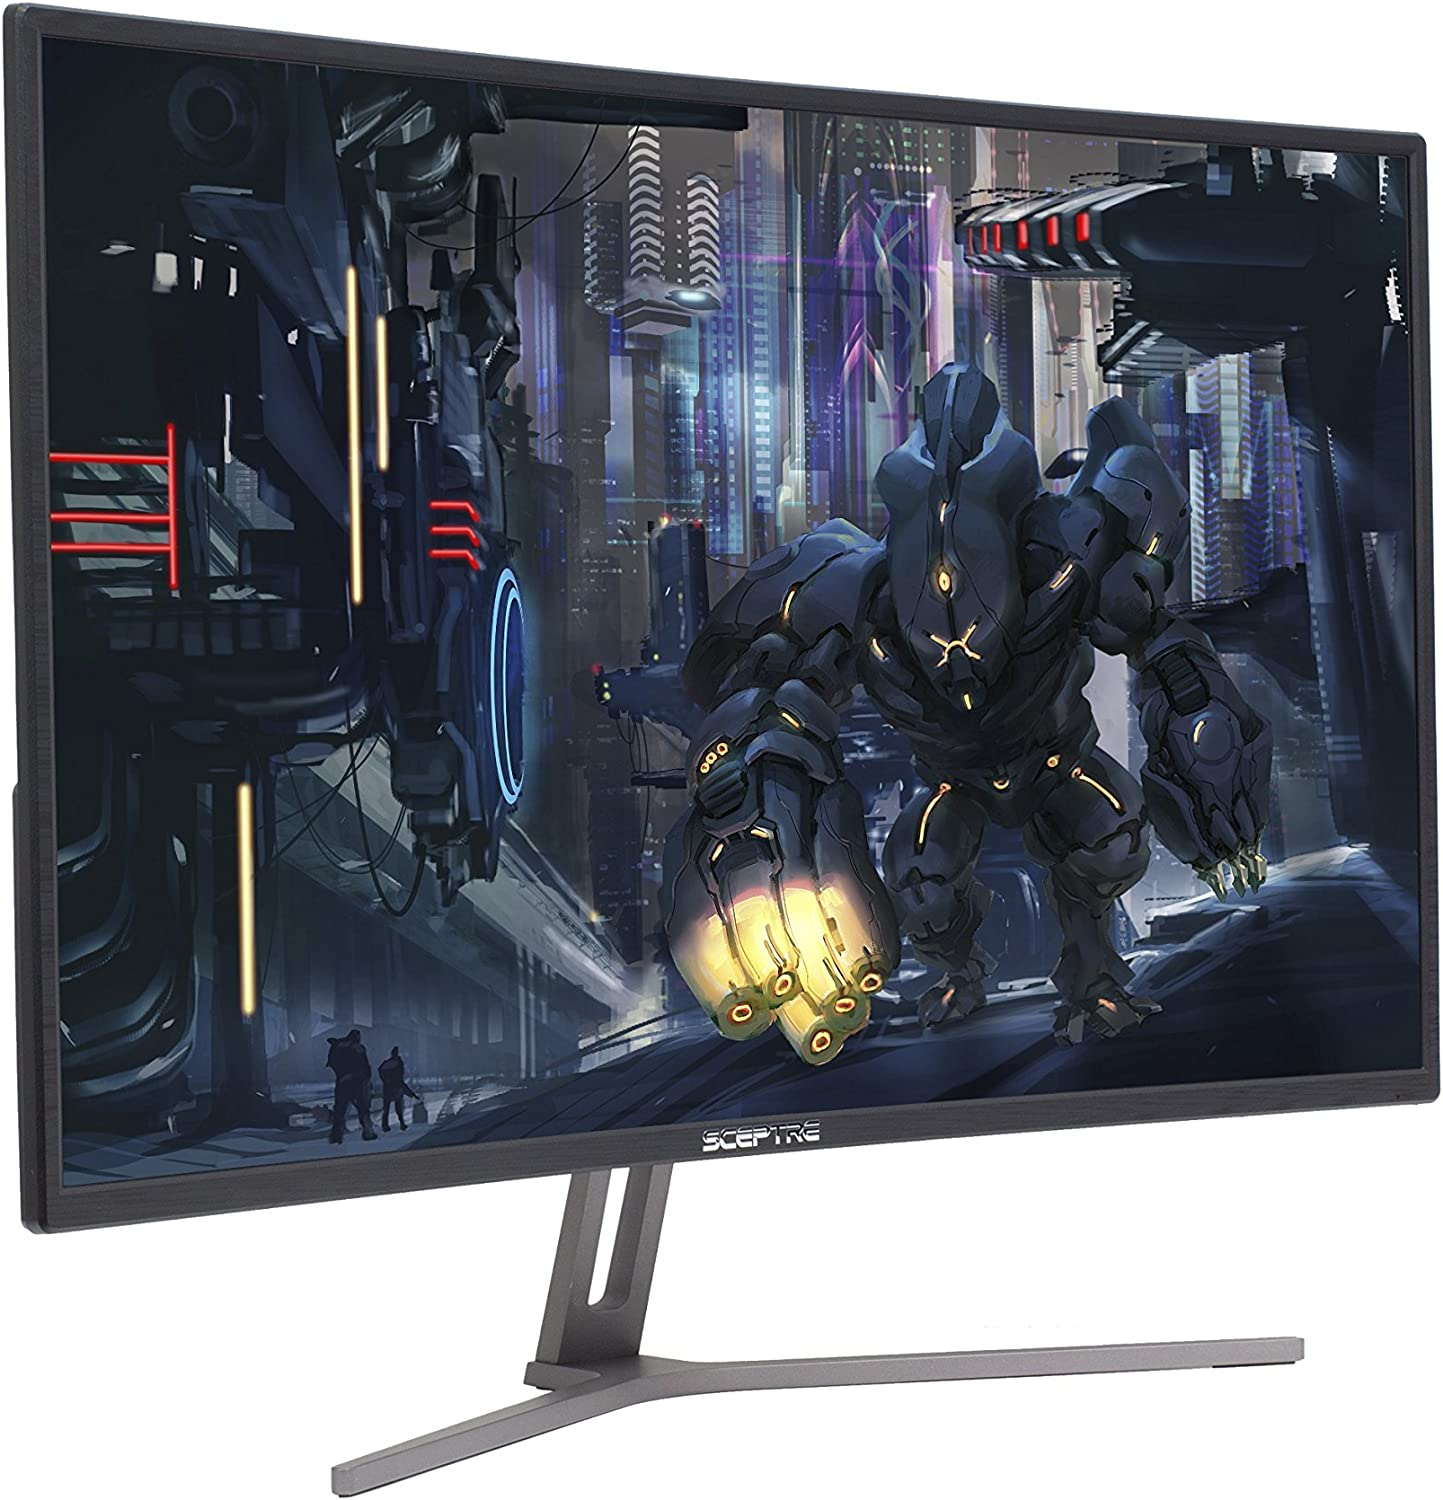 Sceptre C325B-144R 32″ 144Hz 1800R Curved Gaming Monitor with AMD FreeSync